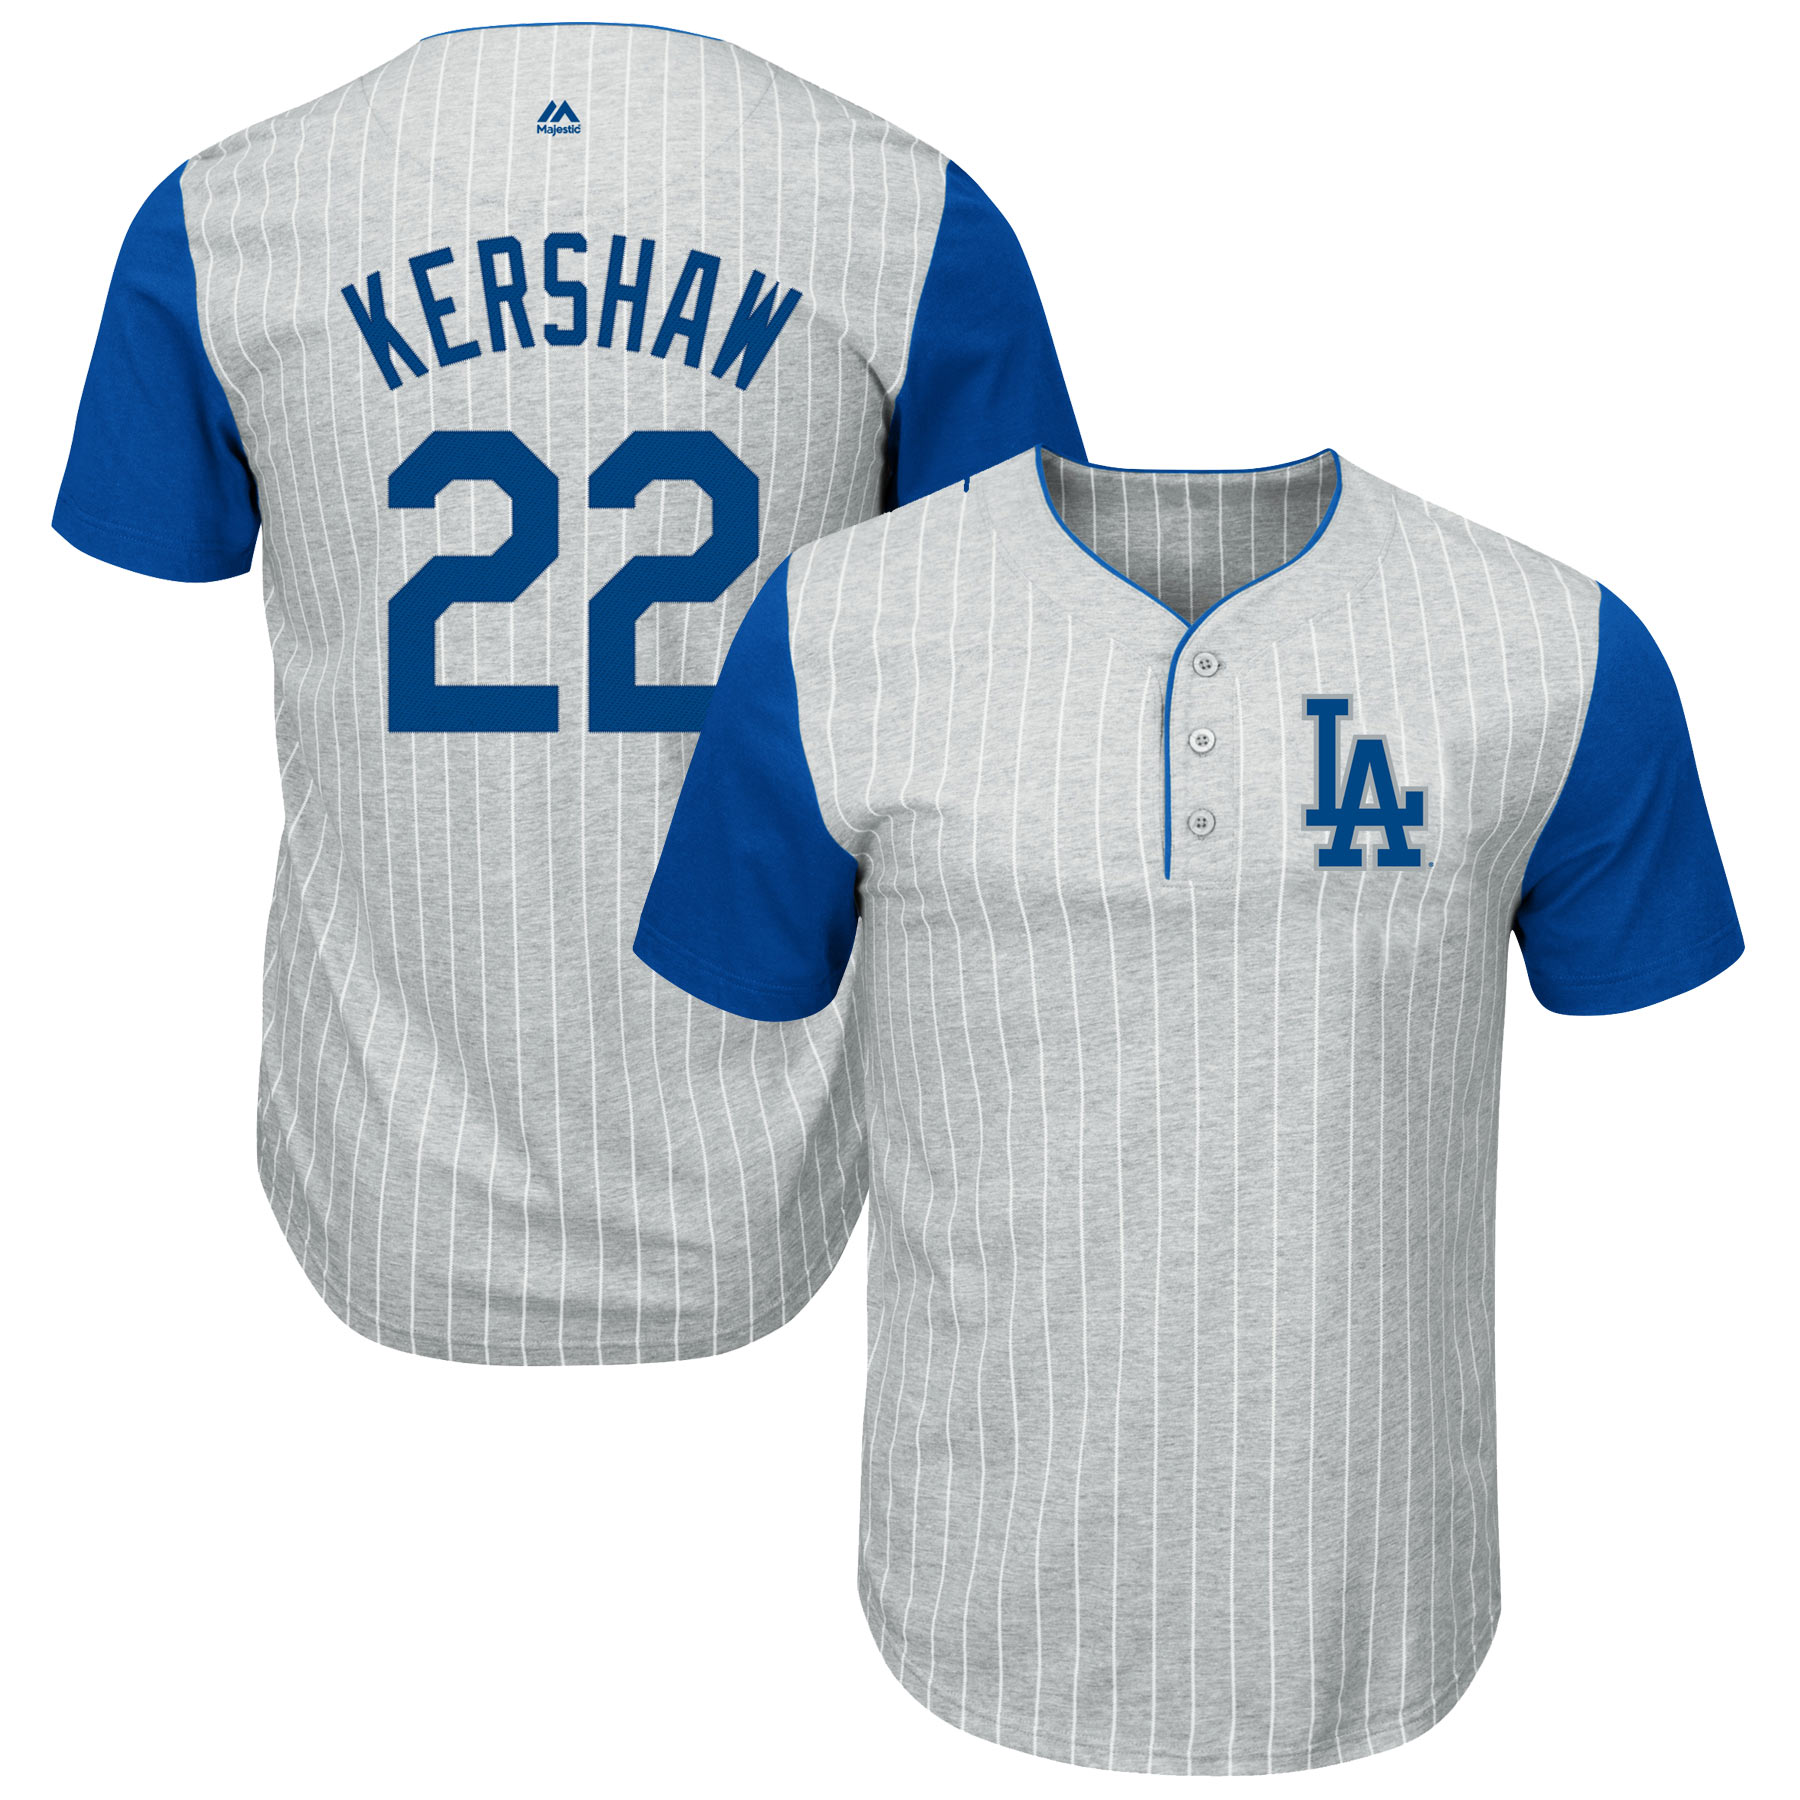 Clayton Kershaw Los Angeles Dodgers Majestic Big & Tall Pinstripe Player T-Shirt - Gray/Royal